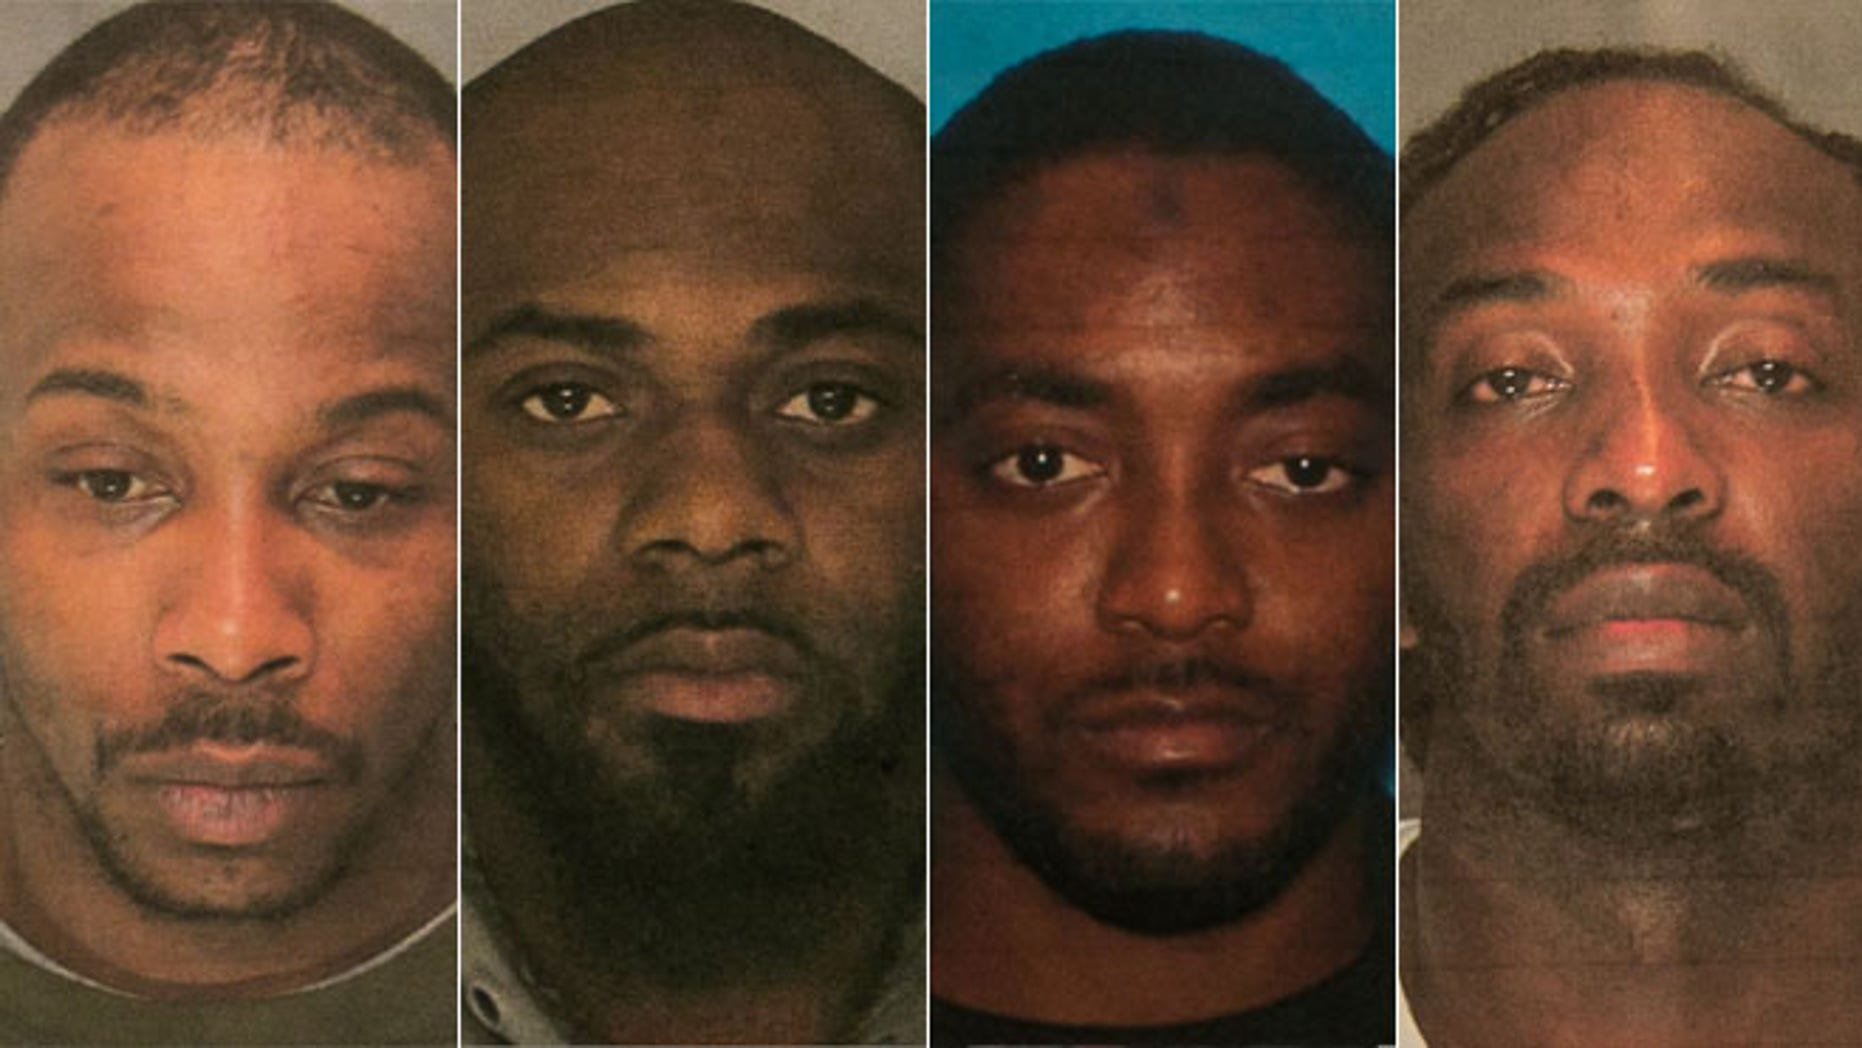 These photos show the four suspects charged in a deadly Dec. 15 carjacking. Police identified the suspects from left to right as, Kevin Roberts, Hanif Thompson, Basim Henry and Karif Ford.